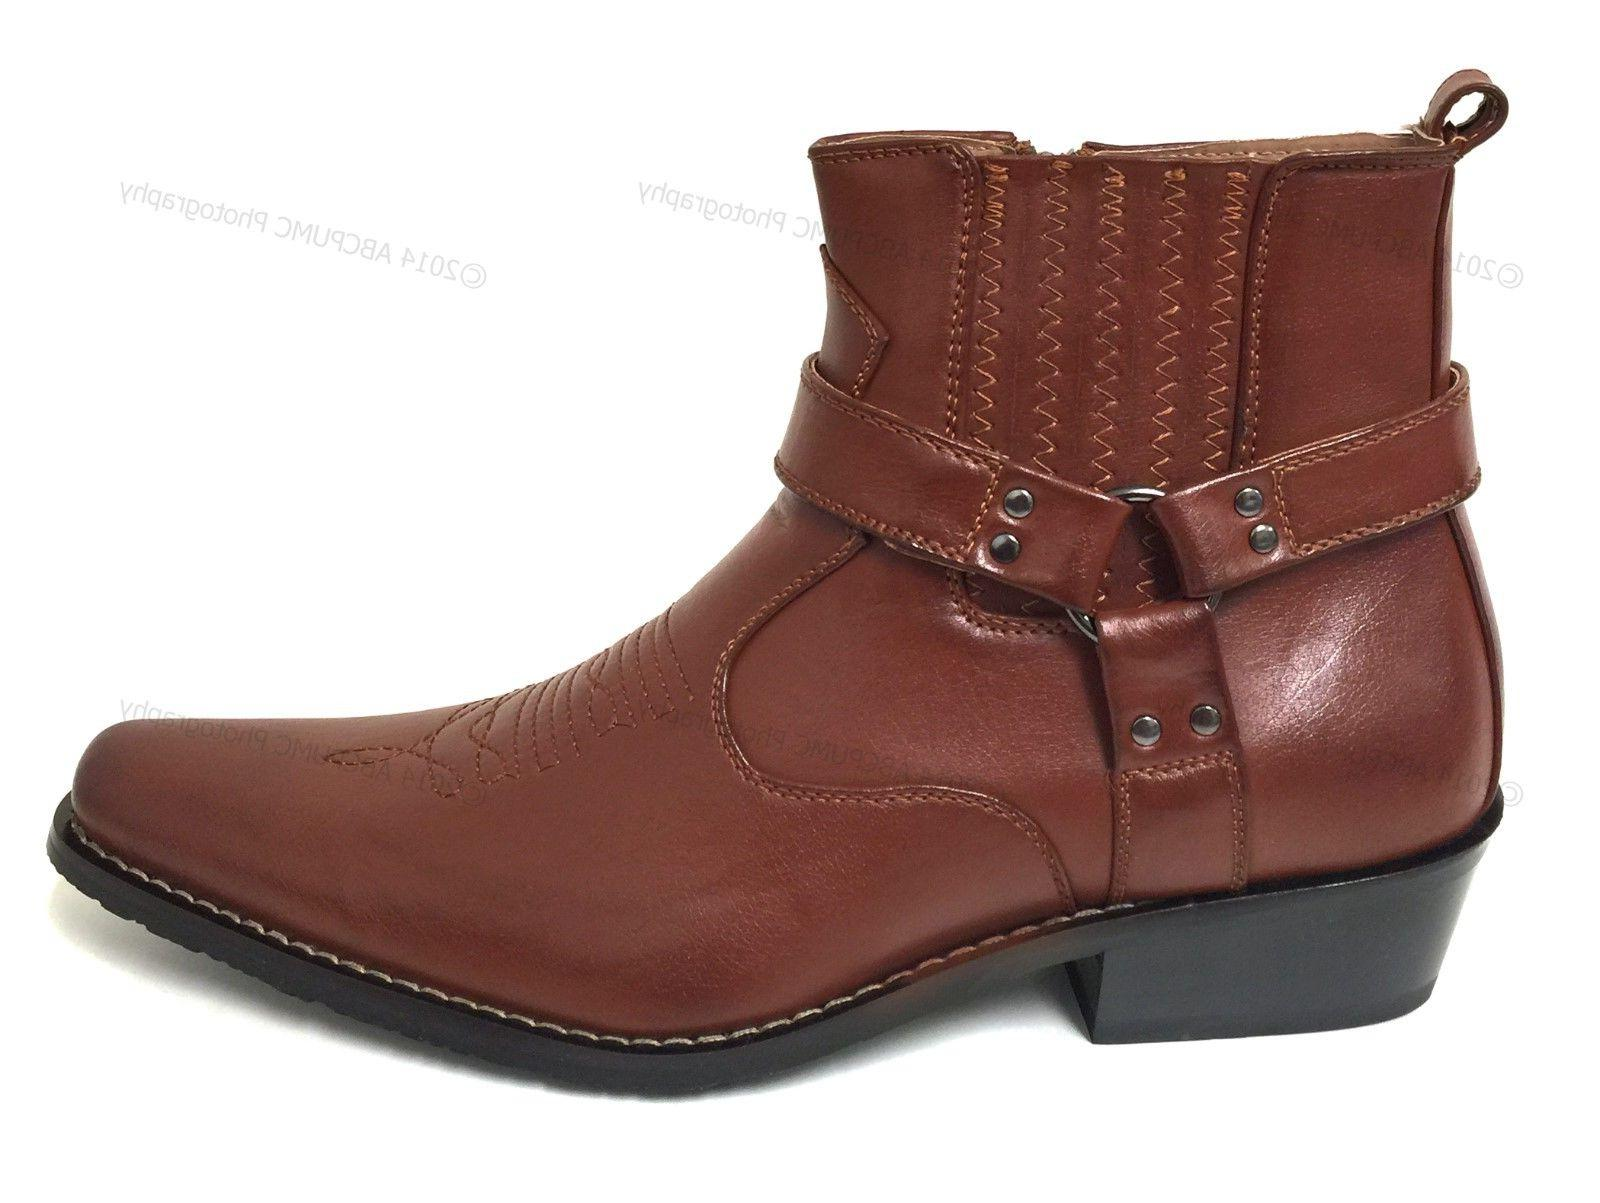 Brand Boots Western Leather Ankle Harness Strap